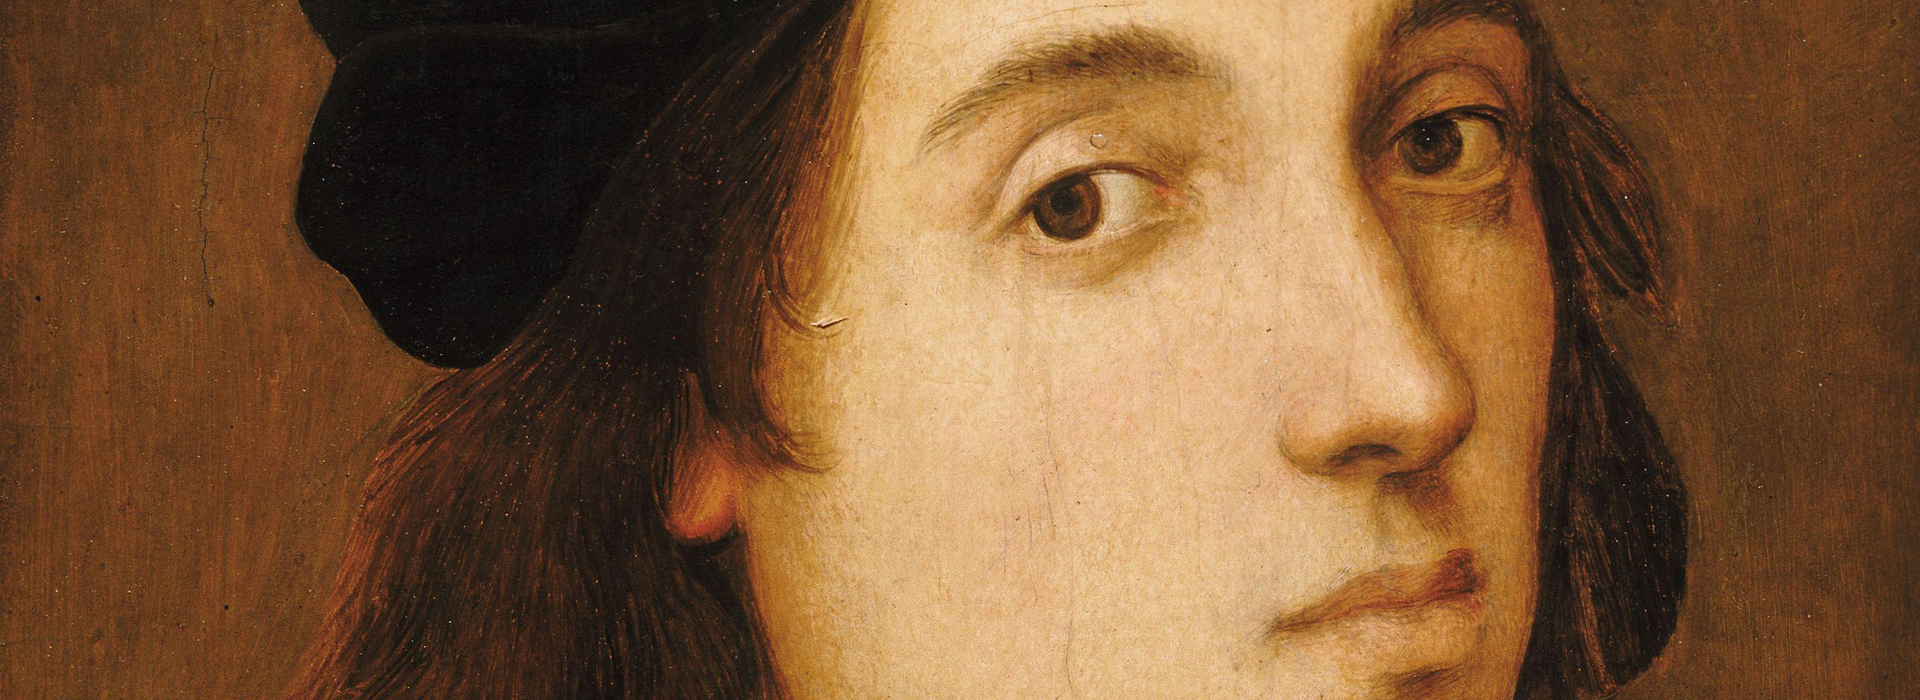 RAPHAEL. POETRY IN PORTRAITS